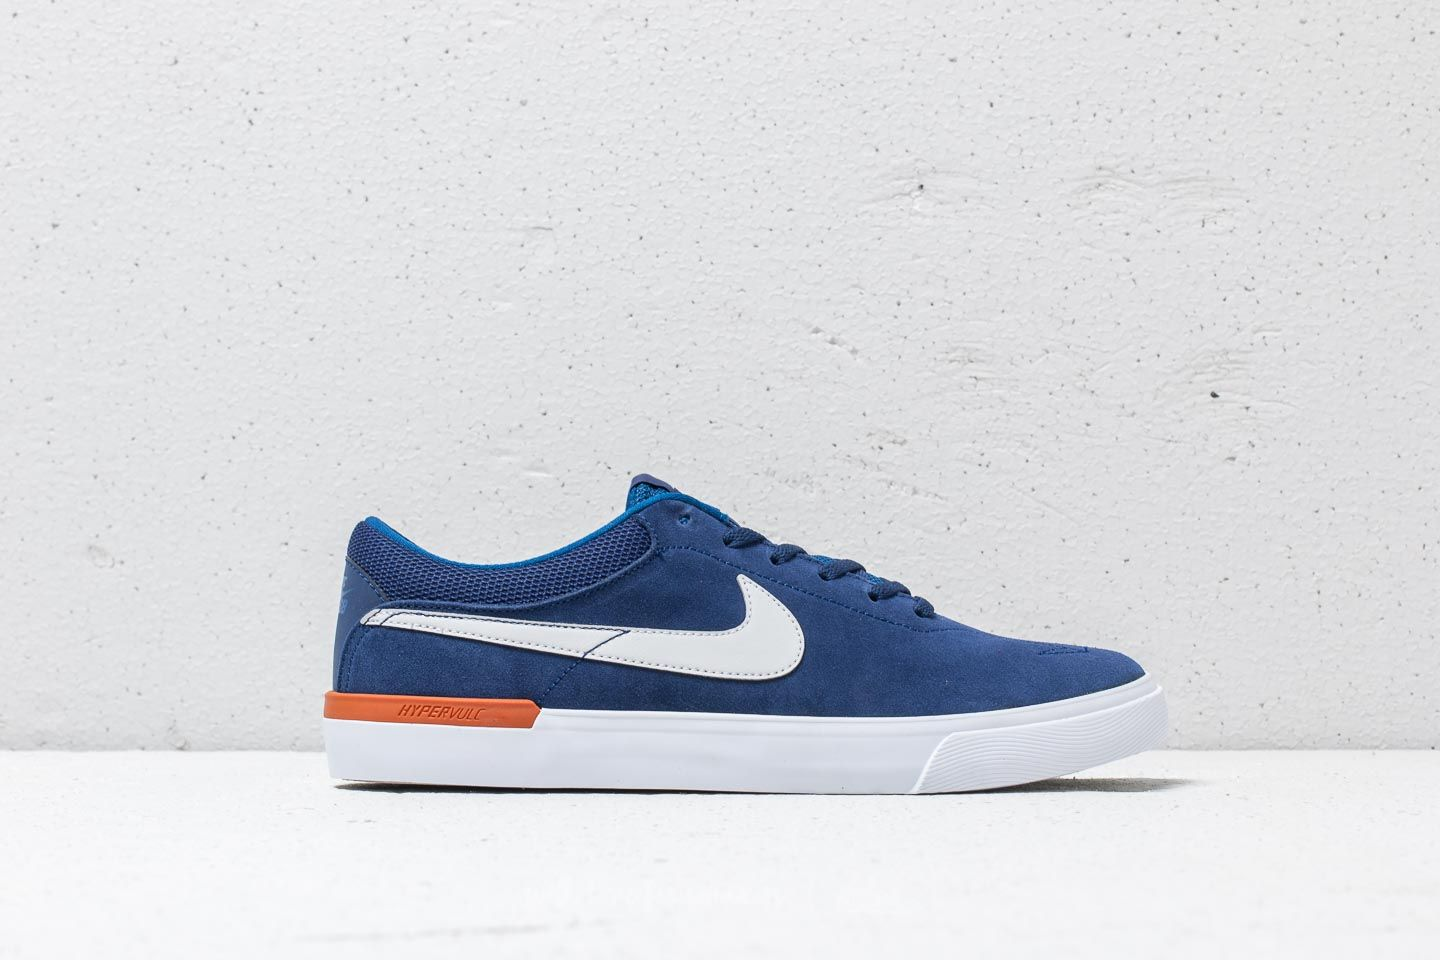 376e1819295 Nike SB Koston Hypervulc Blue Void  Vast Grey-Monarch at a great price 81